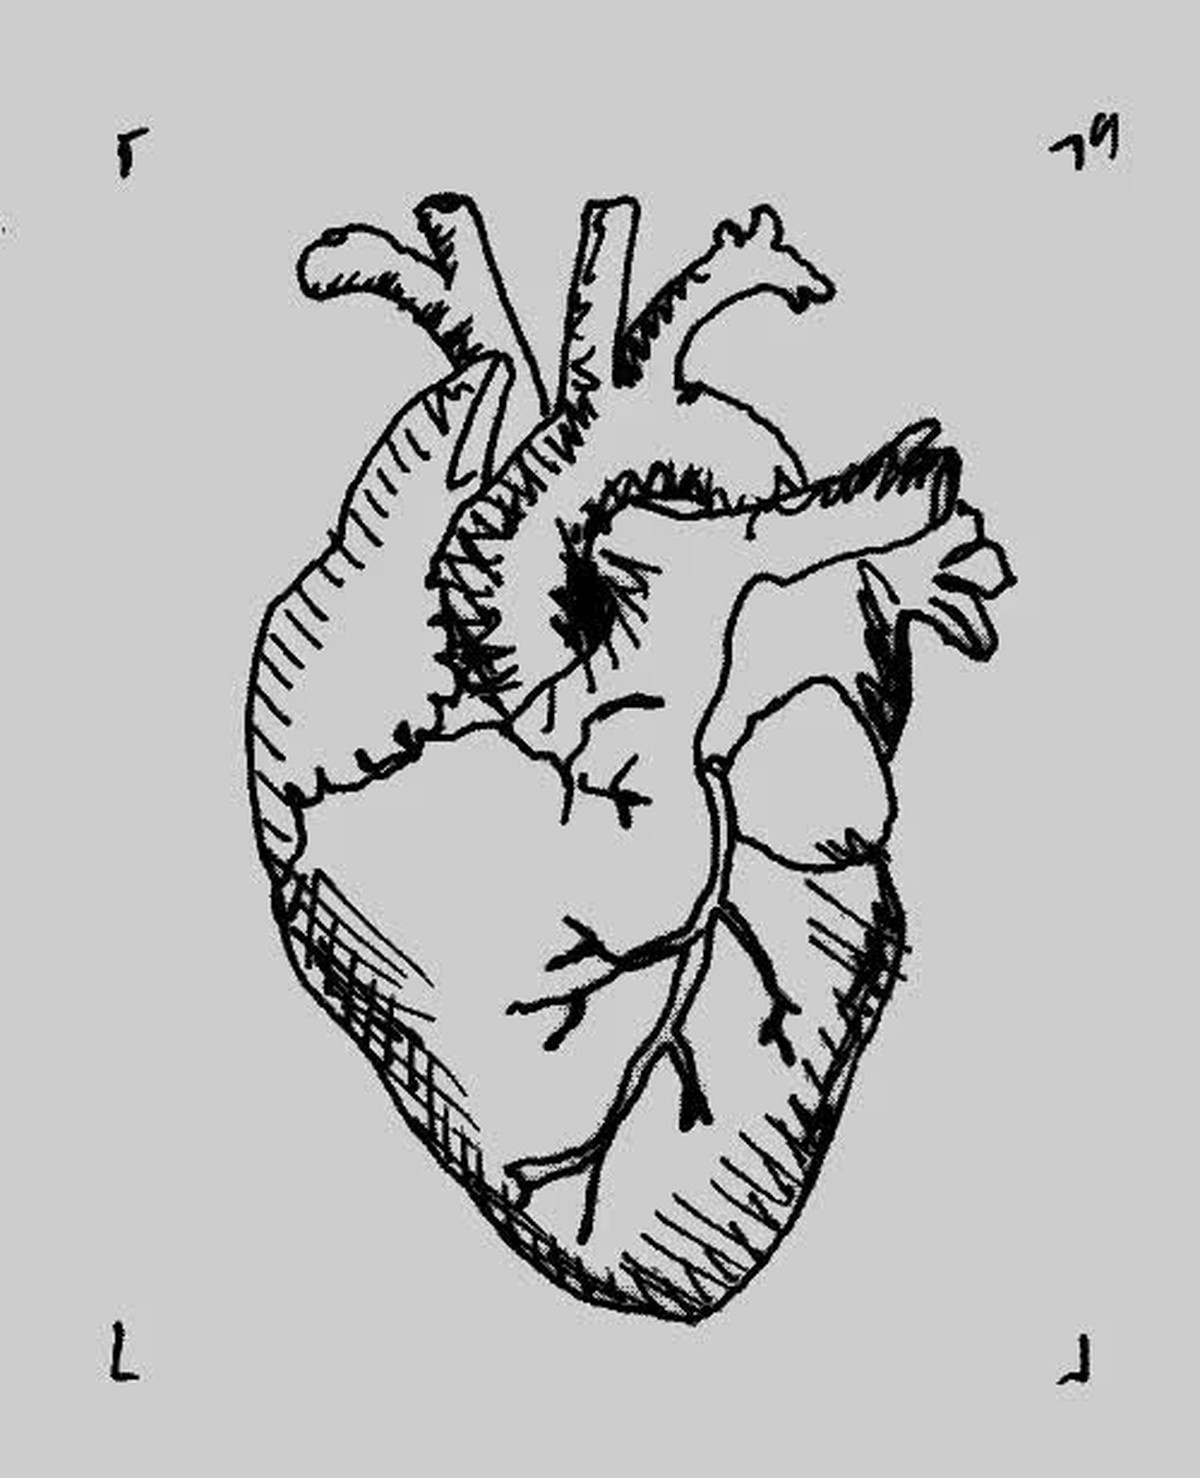 Images of Heart Drawings Tumblr - #rock-cafe